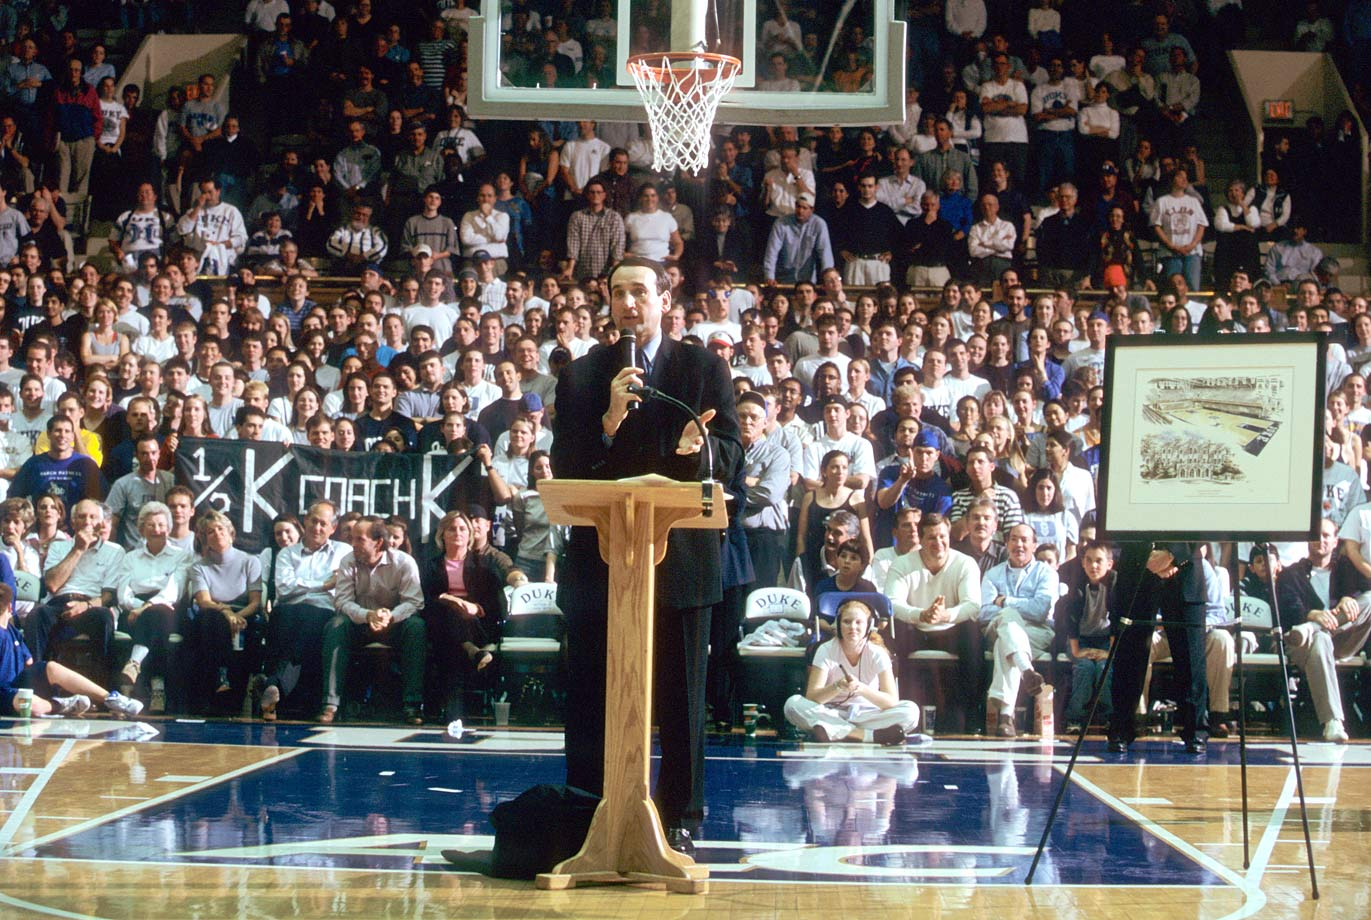 Mike Krzyzewski speaks from a podium after Duke's 98-85 win over Villanova for his 500th career victory at Cameron Indoor Stadium in 2000. Krzyzewski won the game on the day that Coach K Court was unveiled.